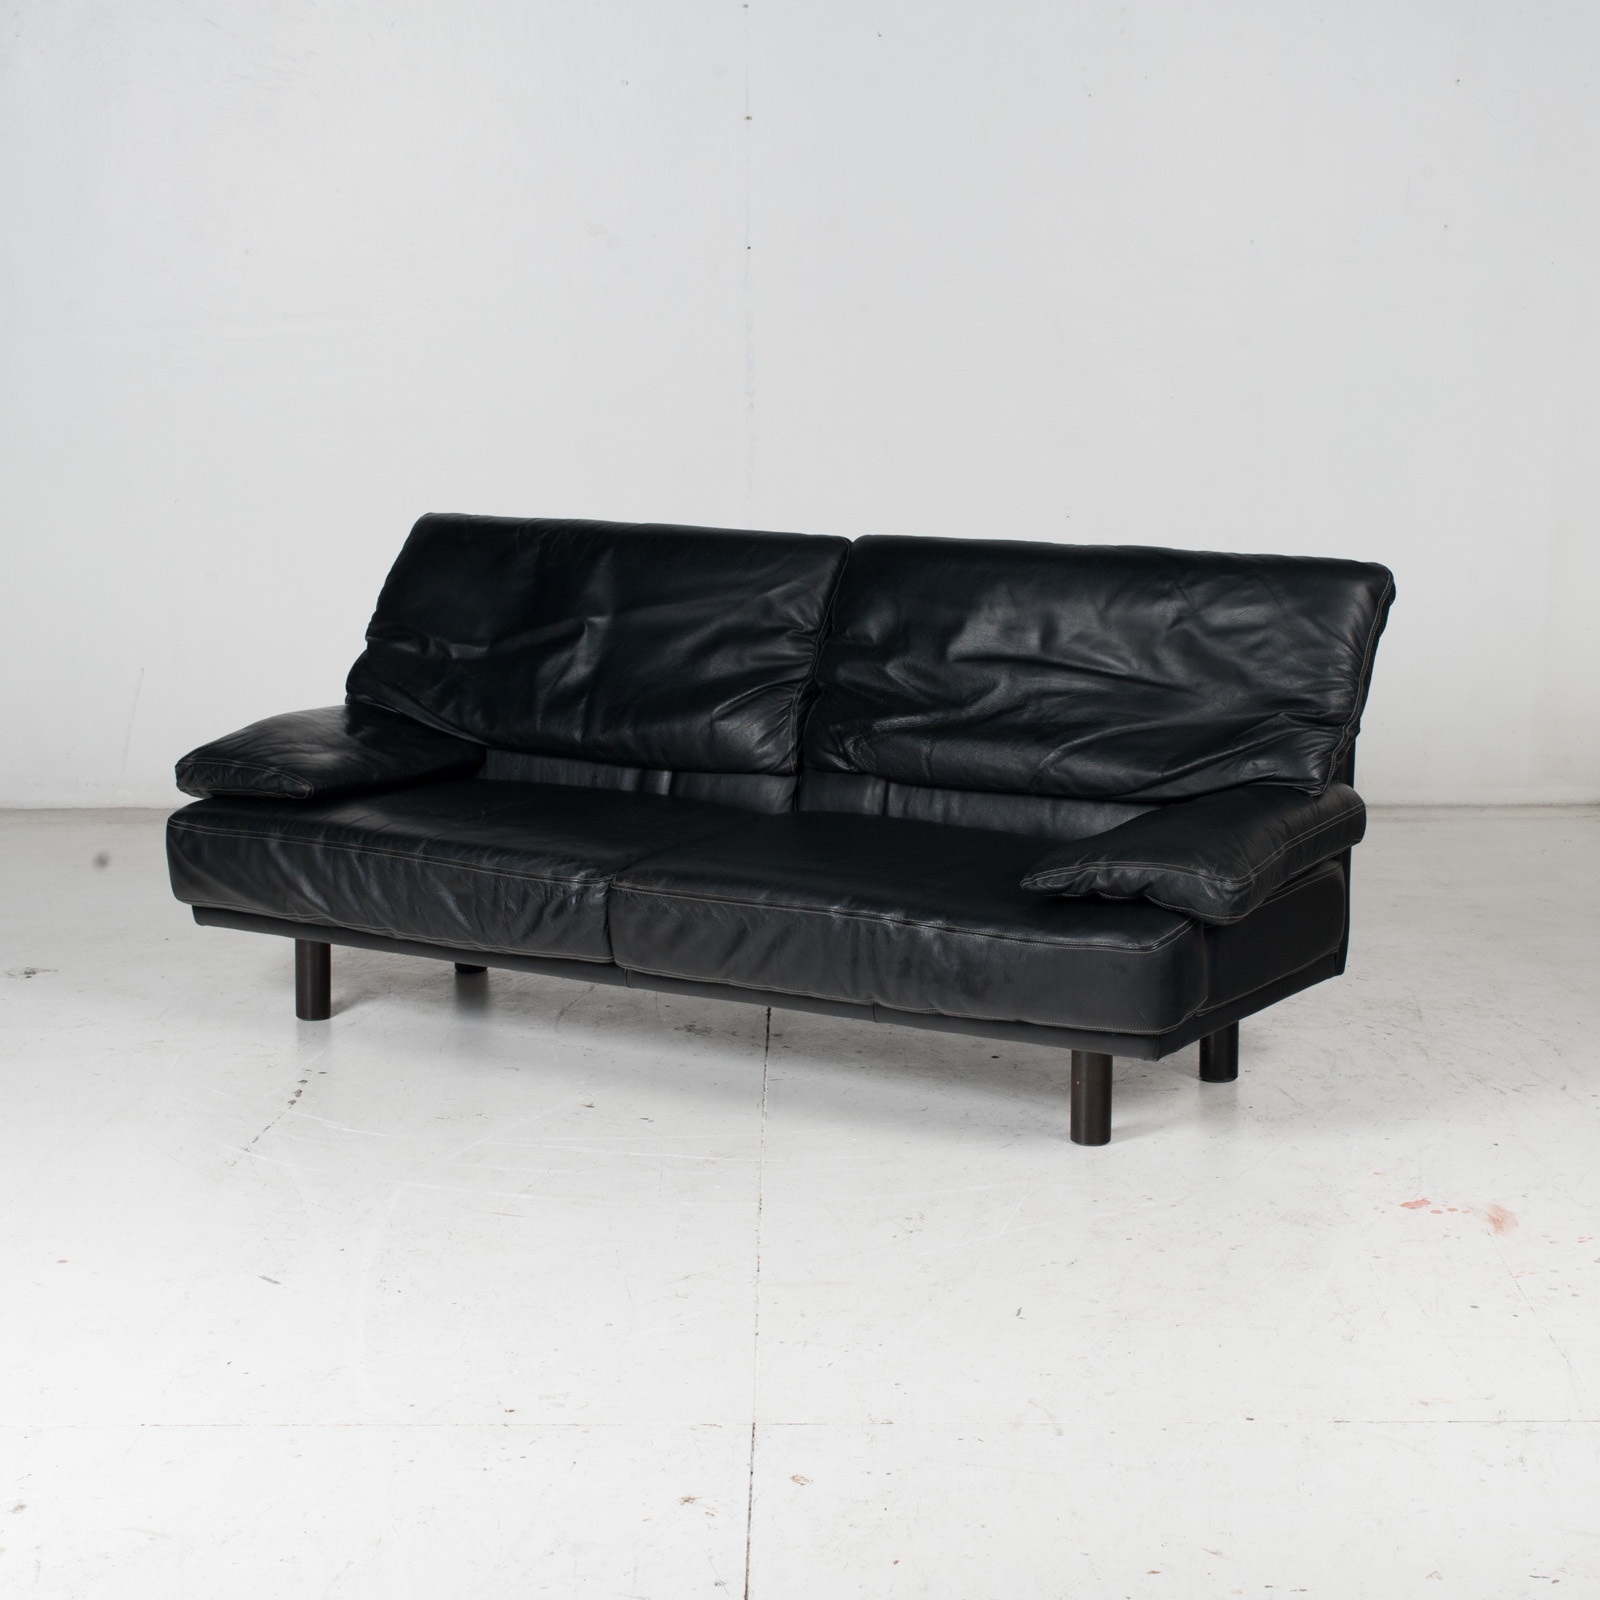 2 Seat Sofa In The Style Of Alanda By Paolo Piva For B&b Italia In Black Leather, 1980s, Italy It 5